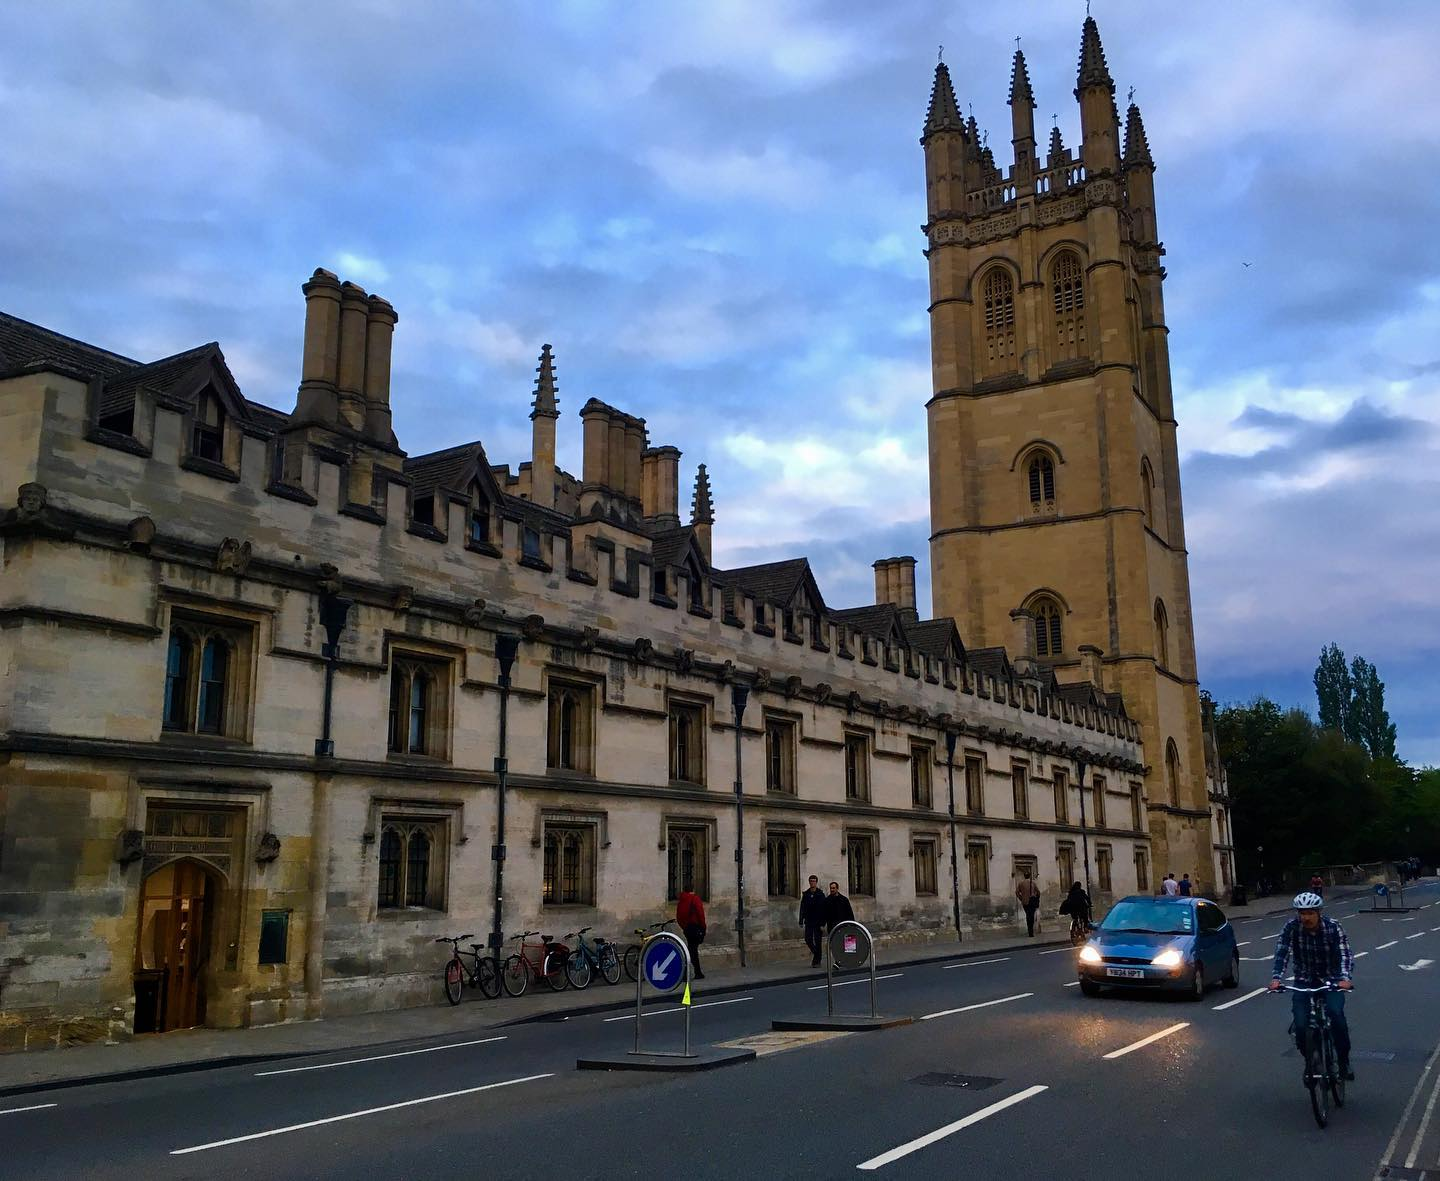 Sunset at The University of Oxford.